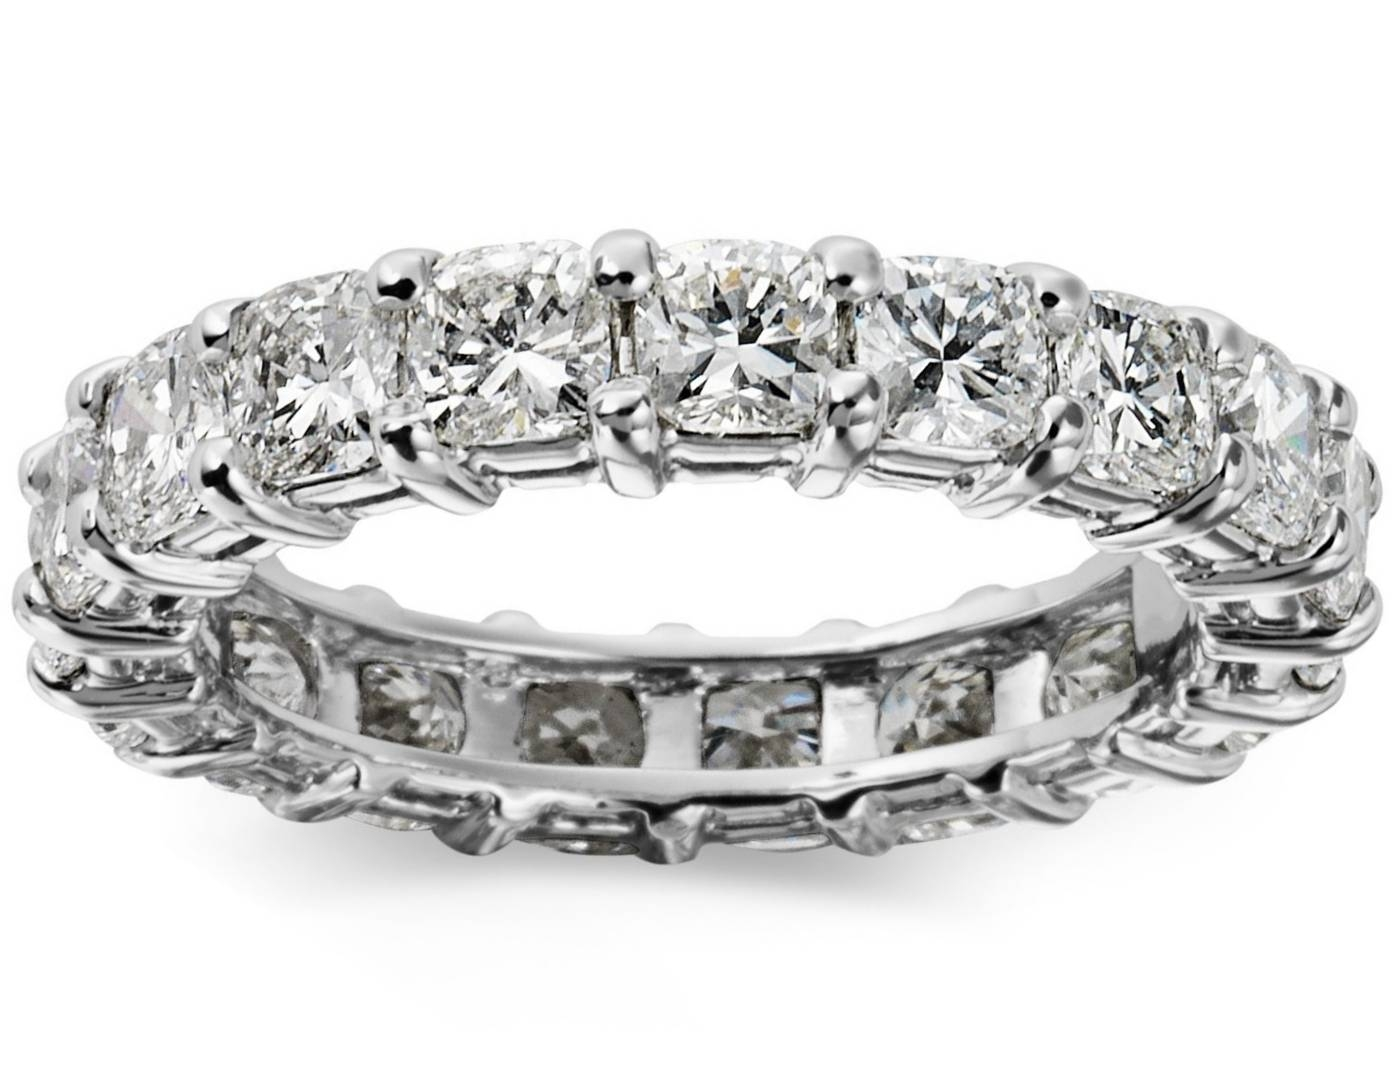 Wedding Band – Cushion Cut Diamond Eternity Ring 2.6 Carat Tw (View 4 of 15)